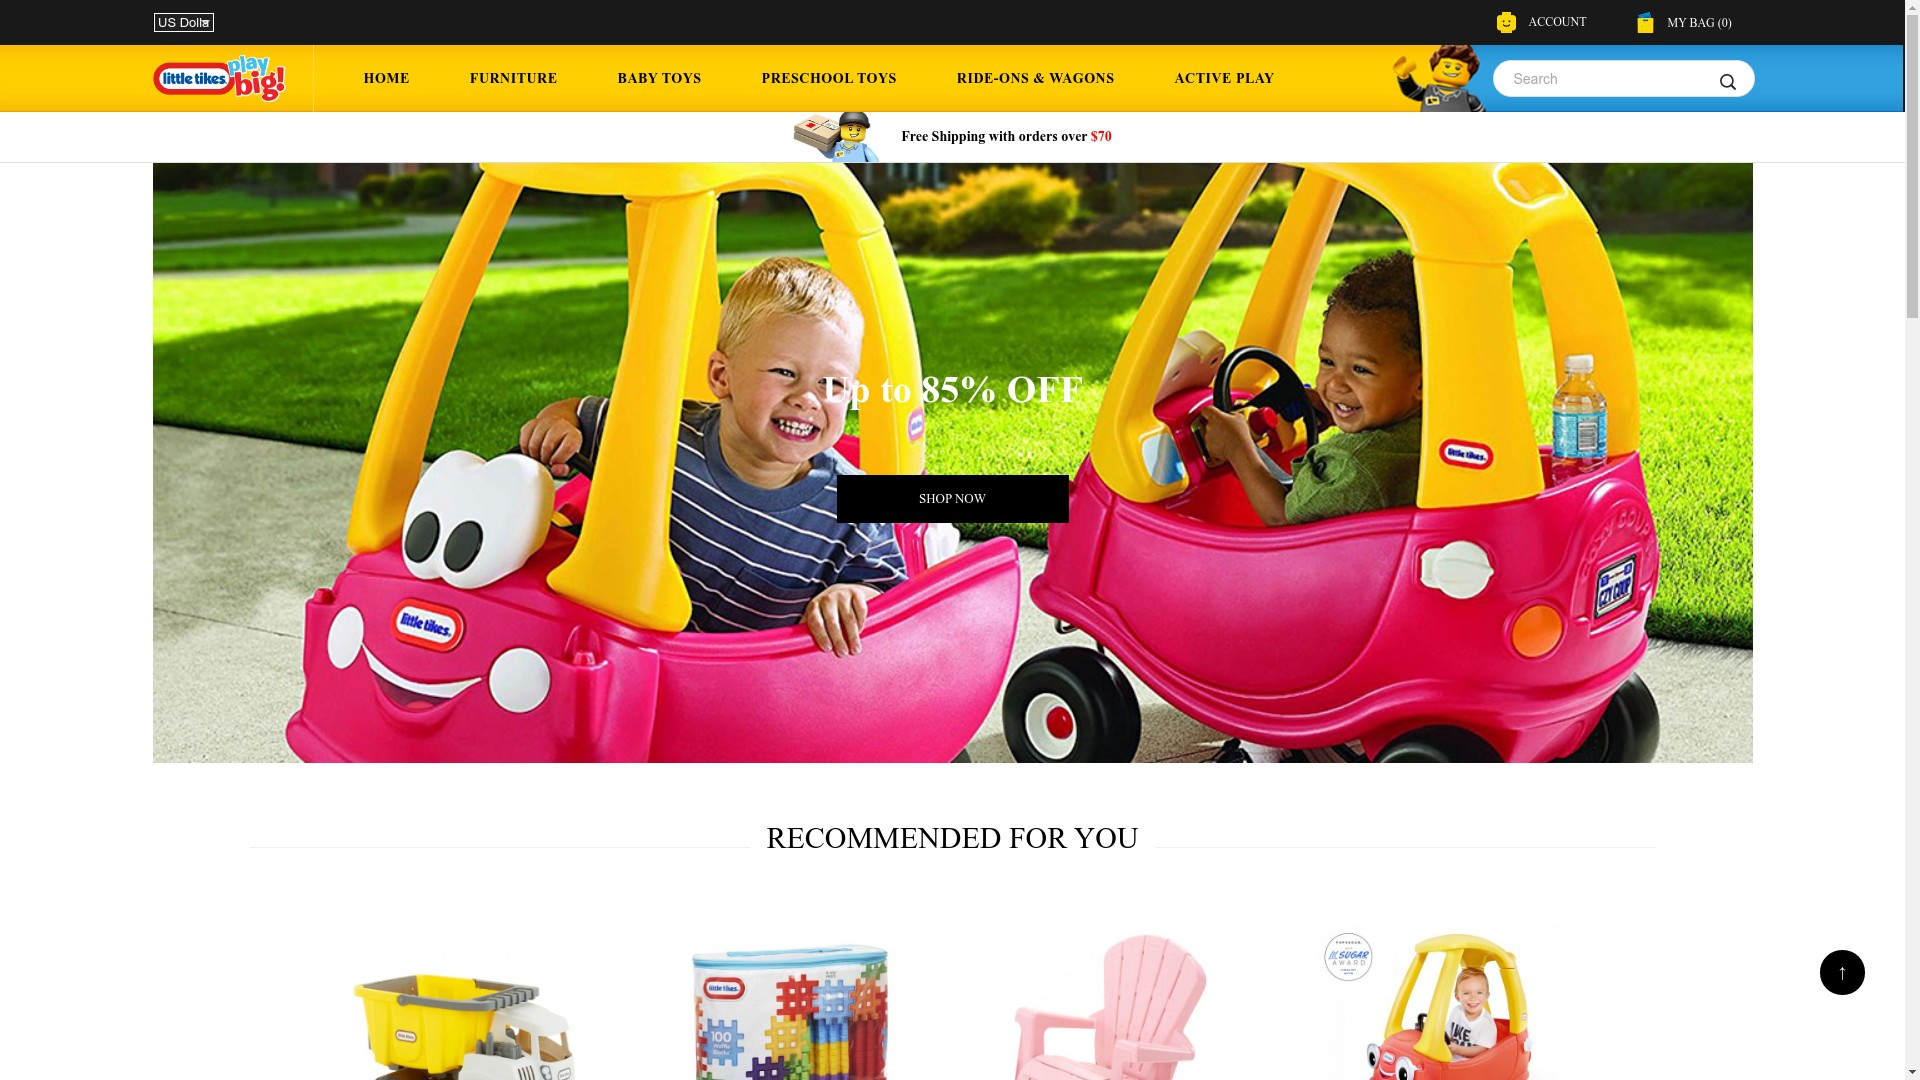 Is Little Tikes Onlines a Scam? Review of the Store